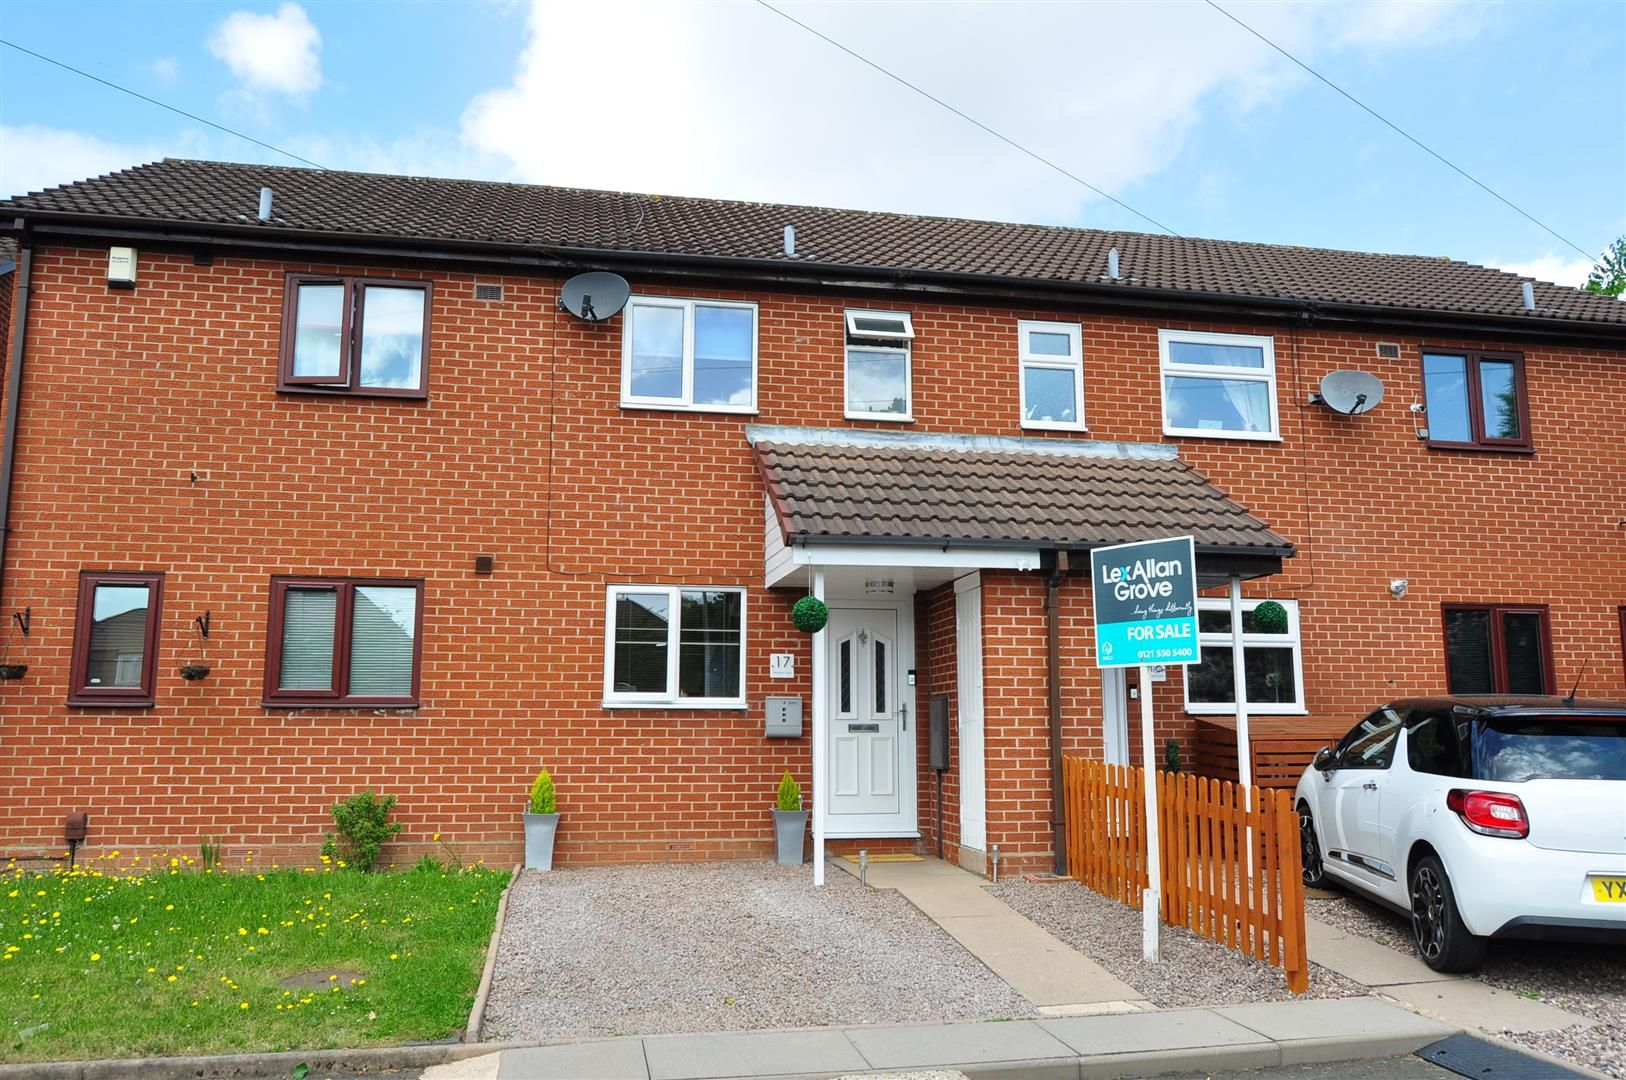 2 bed terraced for sale, B64